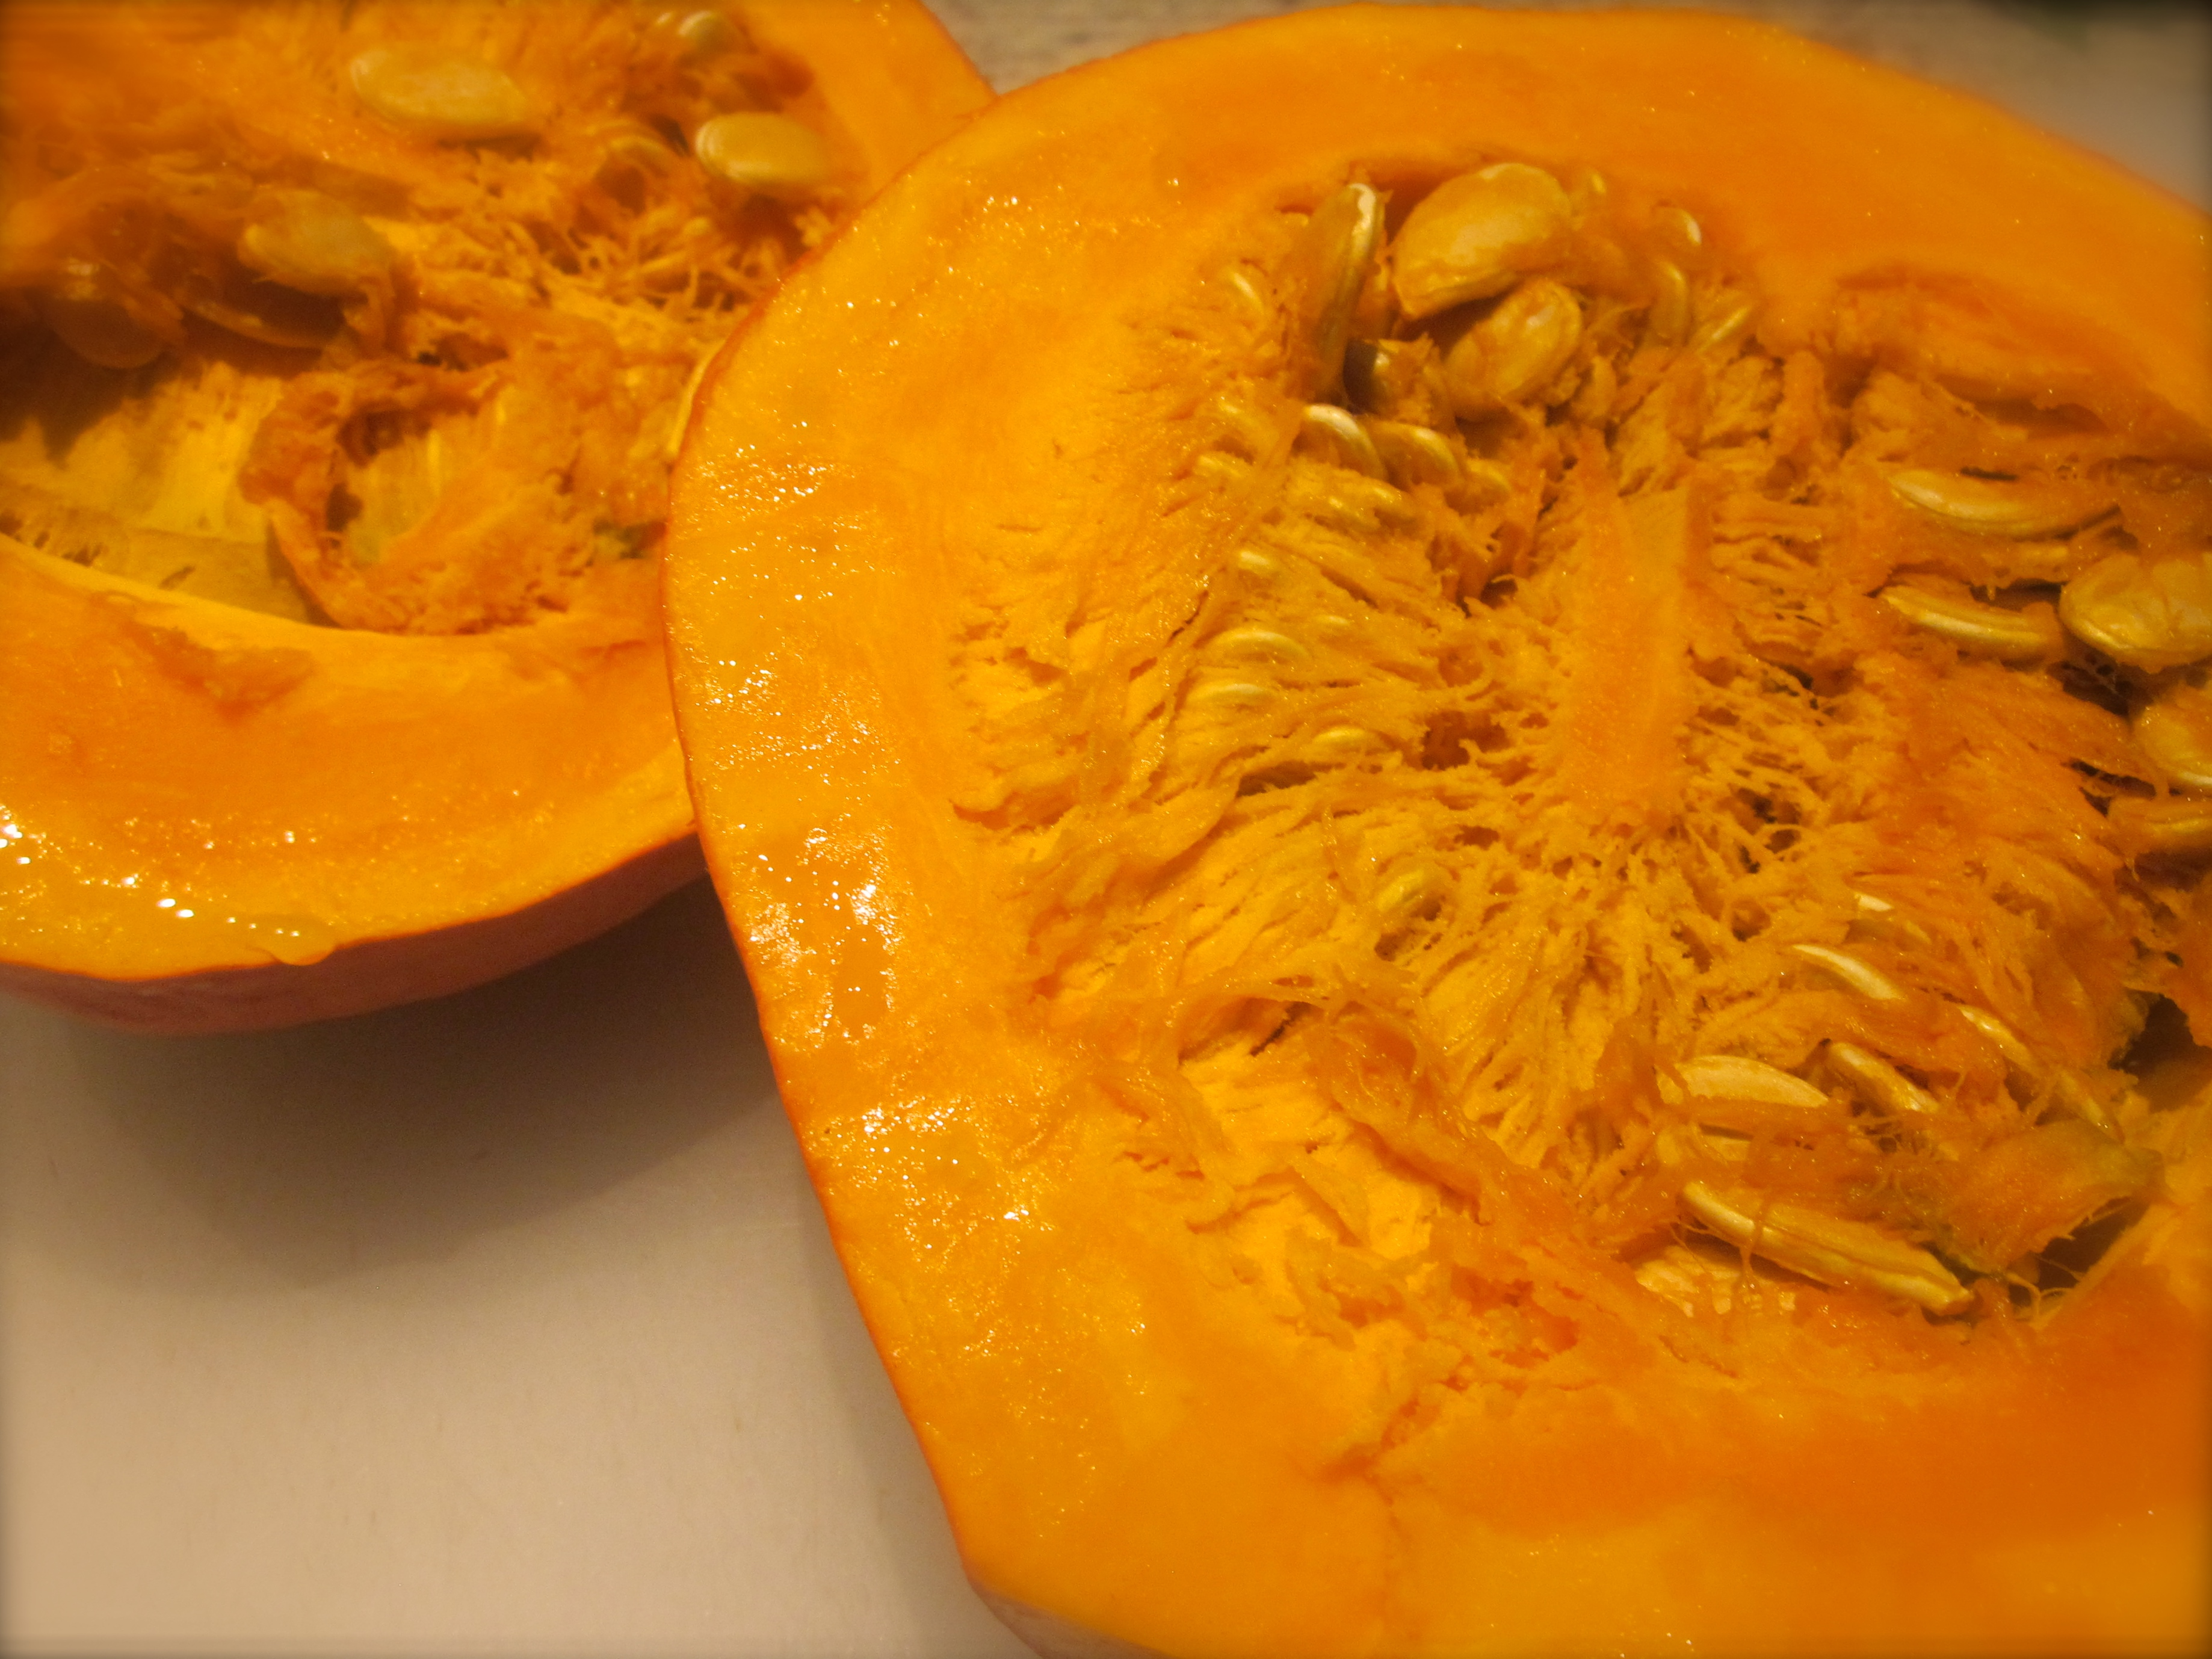 It looks like a squash, it cuts like a squash, it tastes like a squash but  its delicious shell is edible.